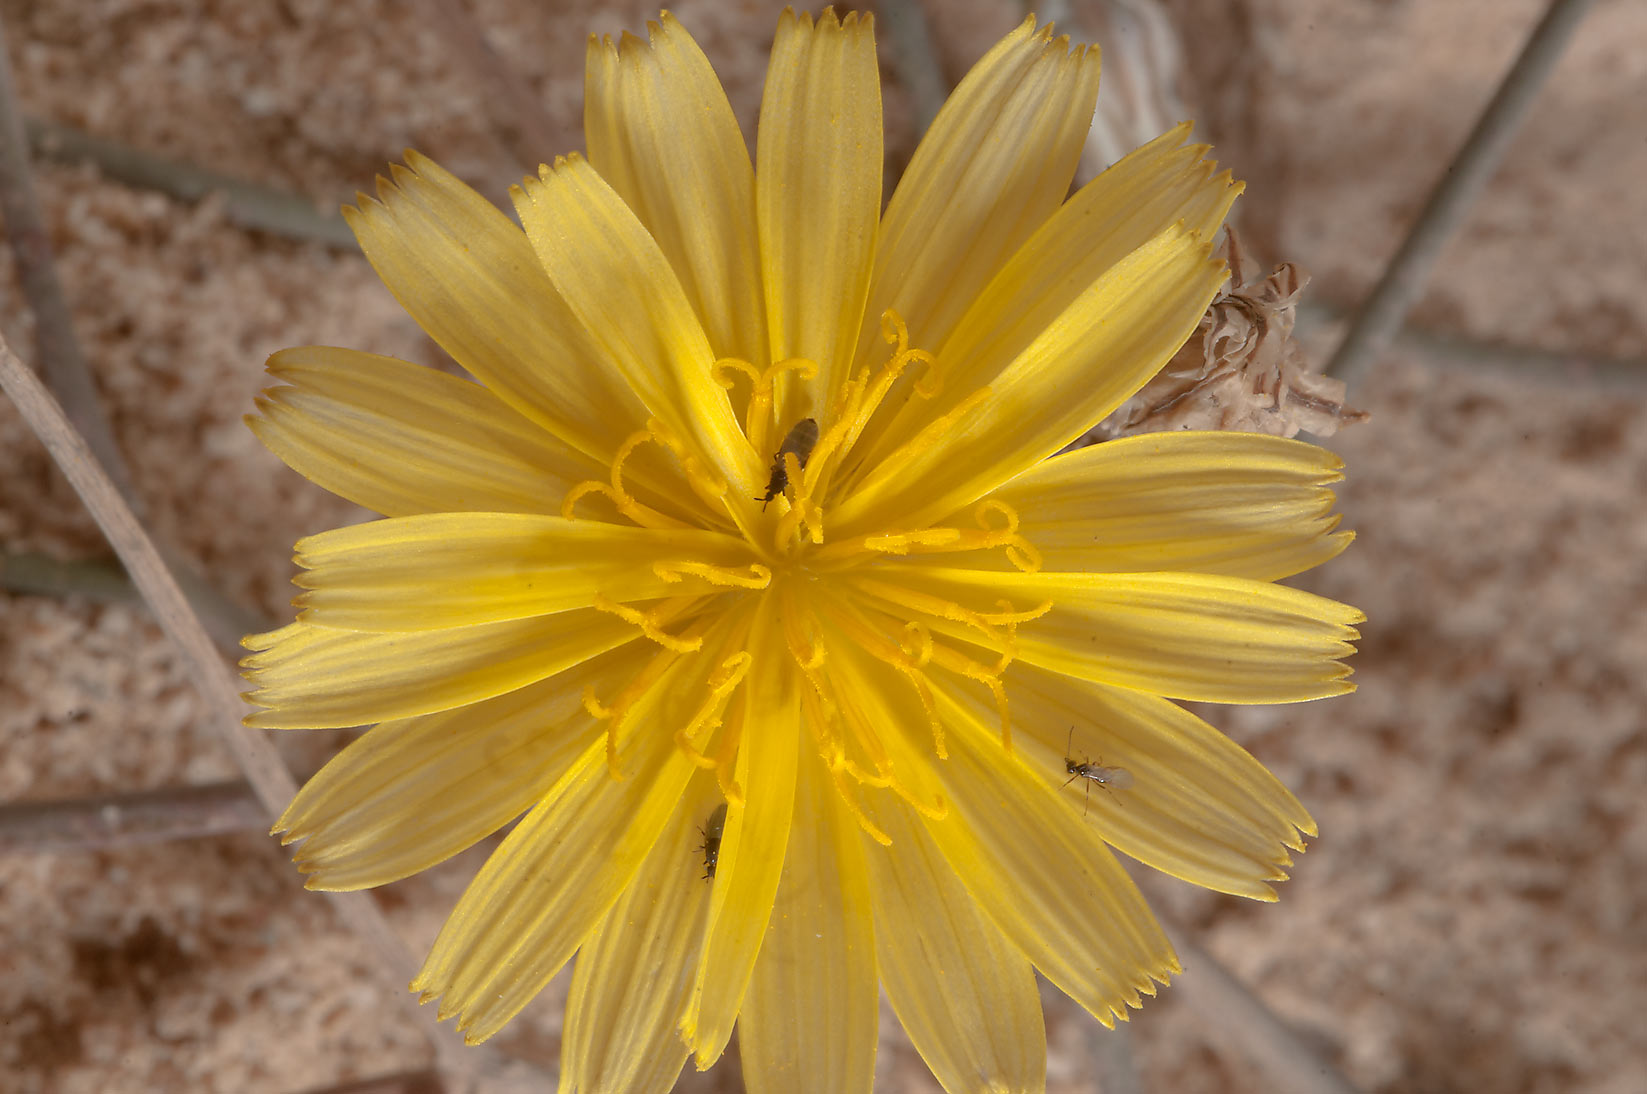 Desert flower of Launaea mucronata (local name...of Jebel Fuwairit. Northern Qatar